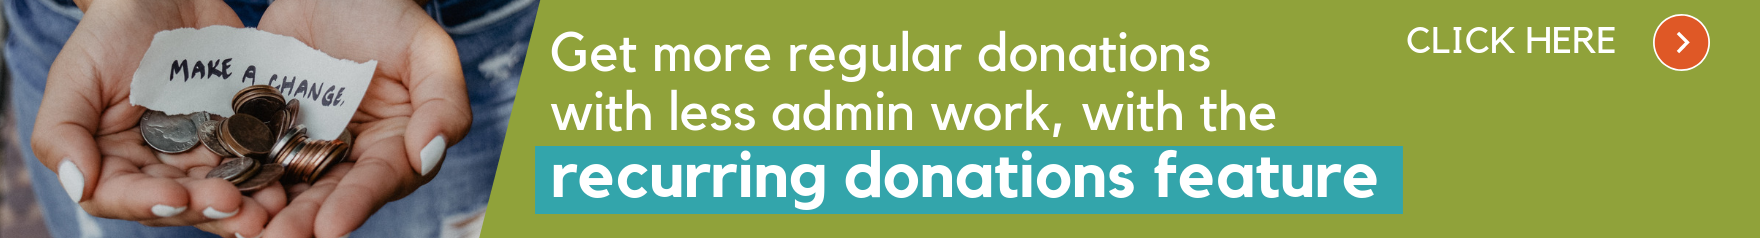 Recurring donation in post banner